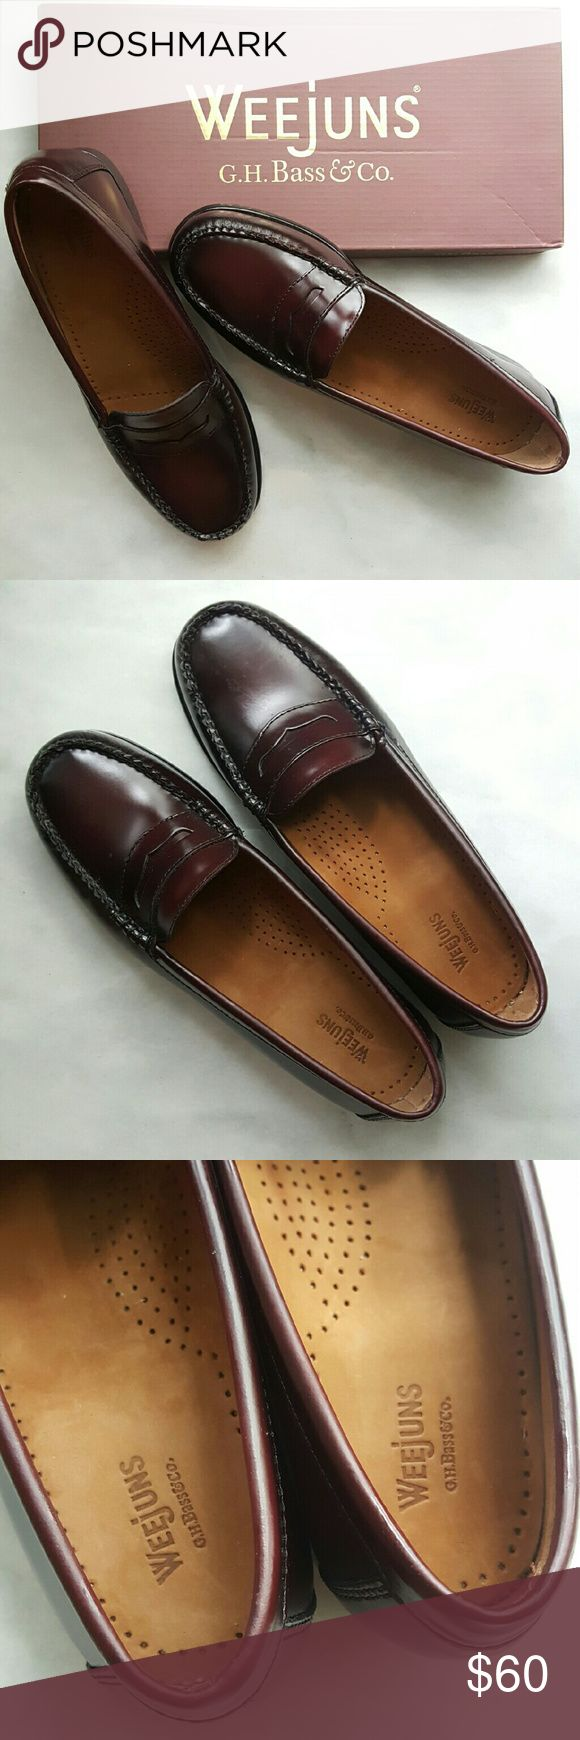 Leather Weejuns GH Bass & co. Womens loafers Like new weejuns womens leather penny loafers. Worn for 3 hours in a hotel. Retails for $109 and up. Color is a reddish brown size 7.5, i feel like they run slightly large. G.H Bass & Co. Shoes Flats & Loafers